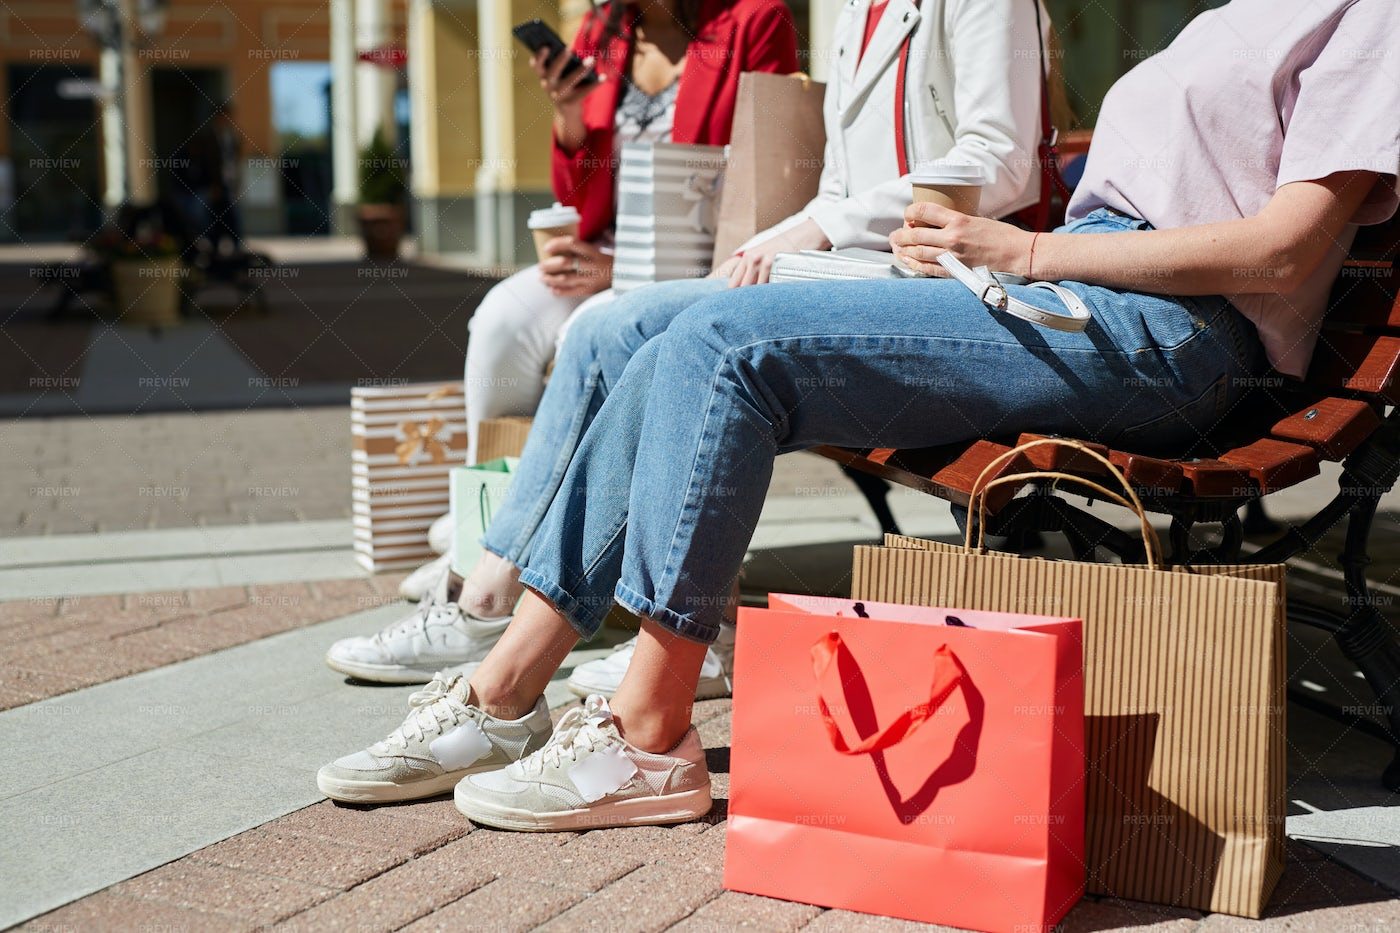 Casual Outfits Of Shoppers: Stock Photos